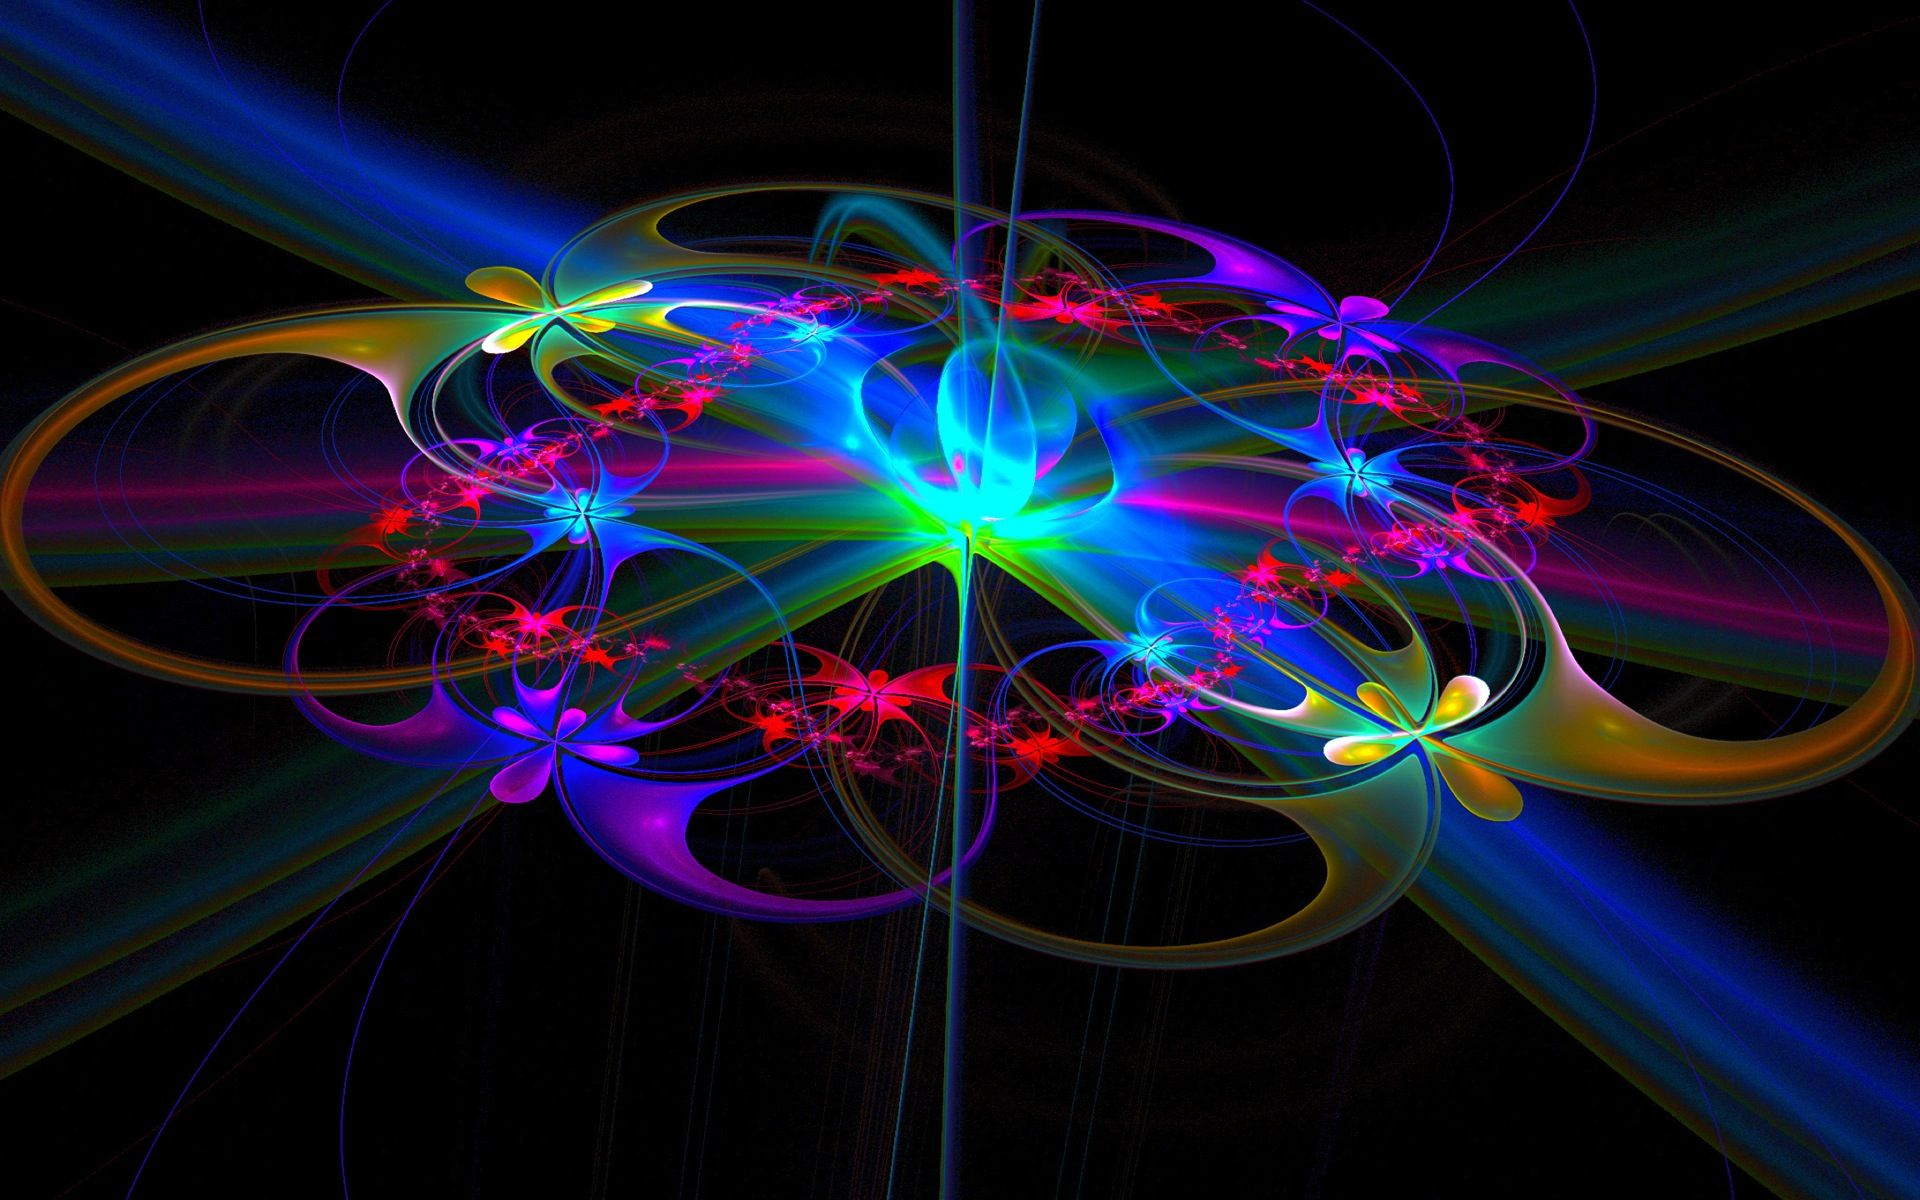 abstract hd wallpapers neon sneakers - photo #37